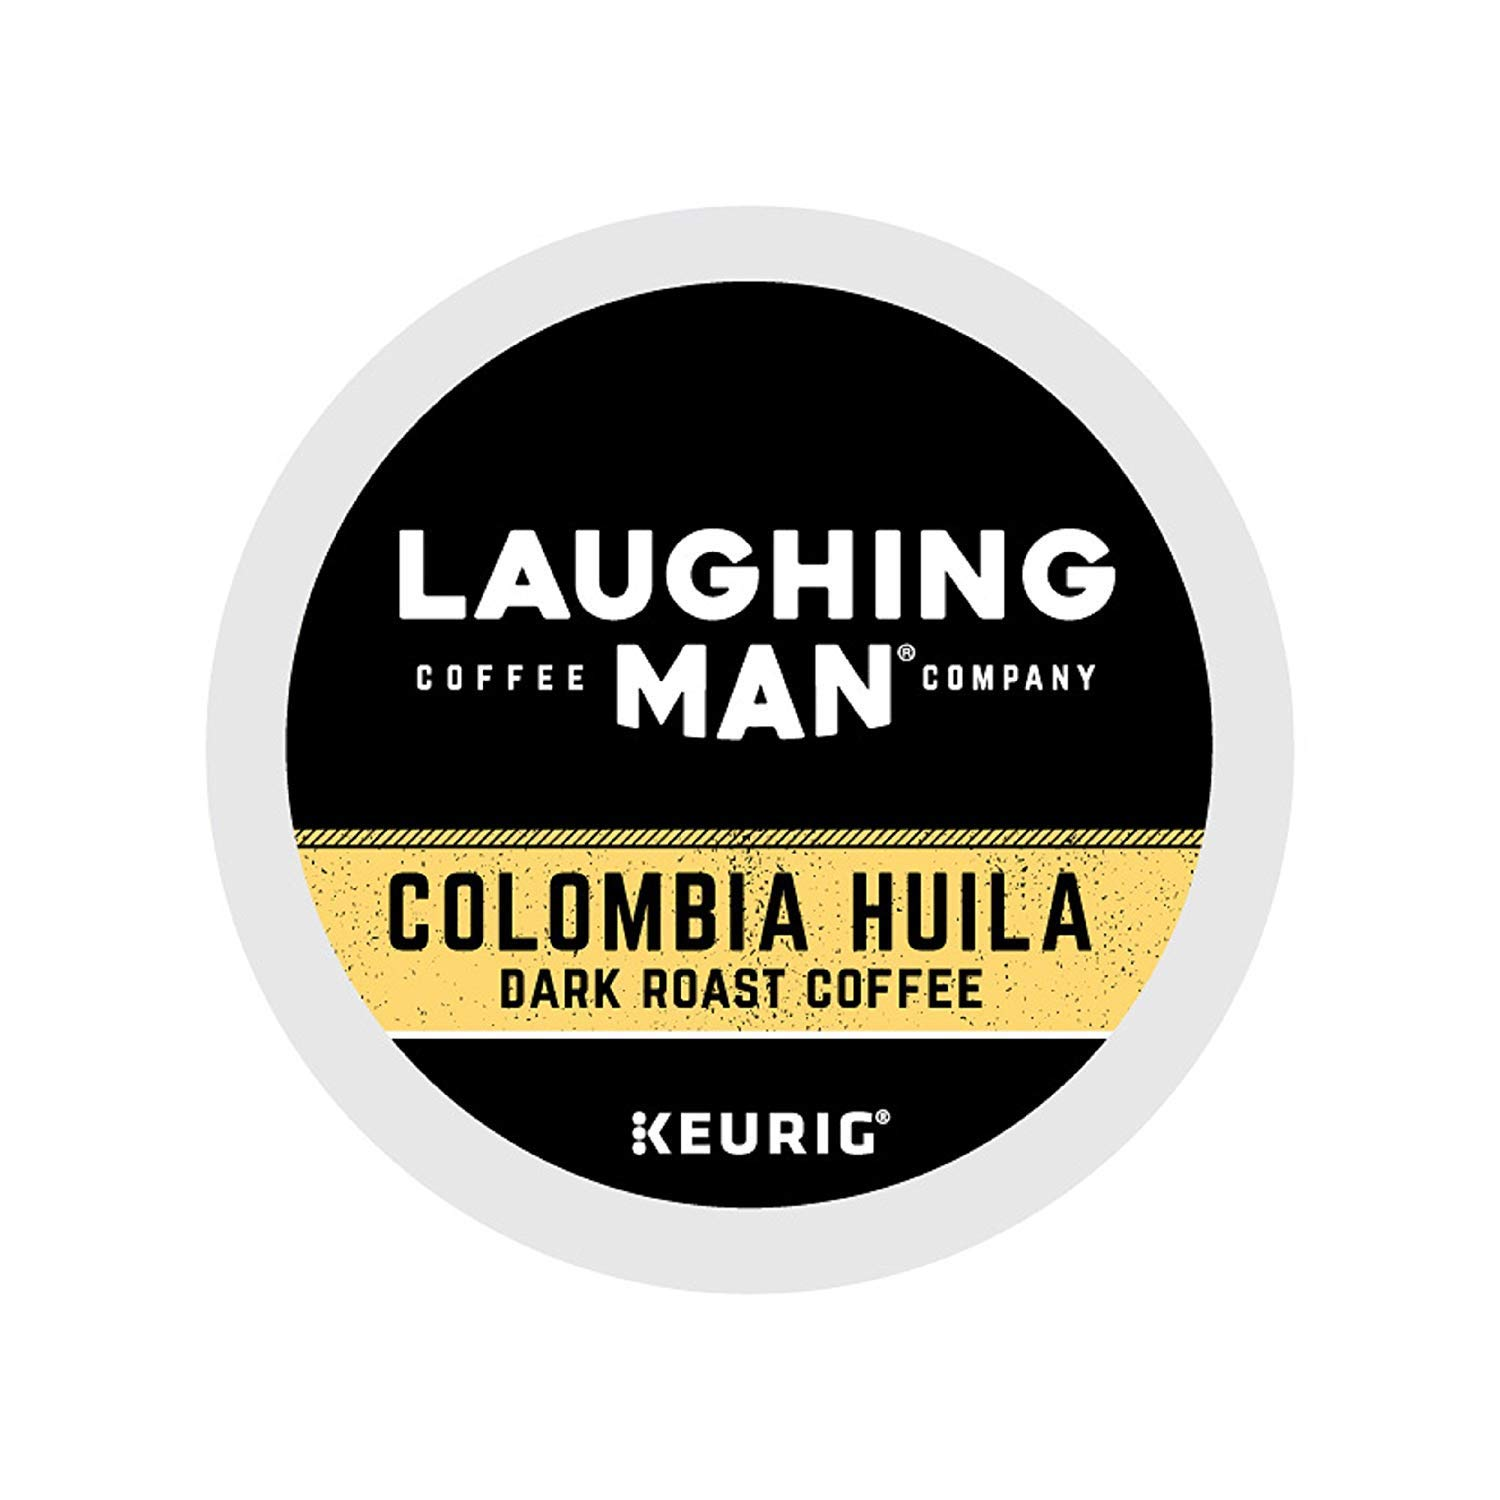 Laughing Man Colombia Huila Coffee Single-Serve K-Cups for Keurig Brewers, 16 Count